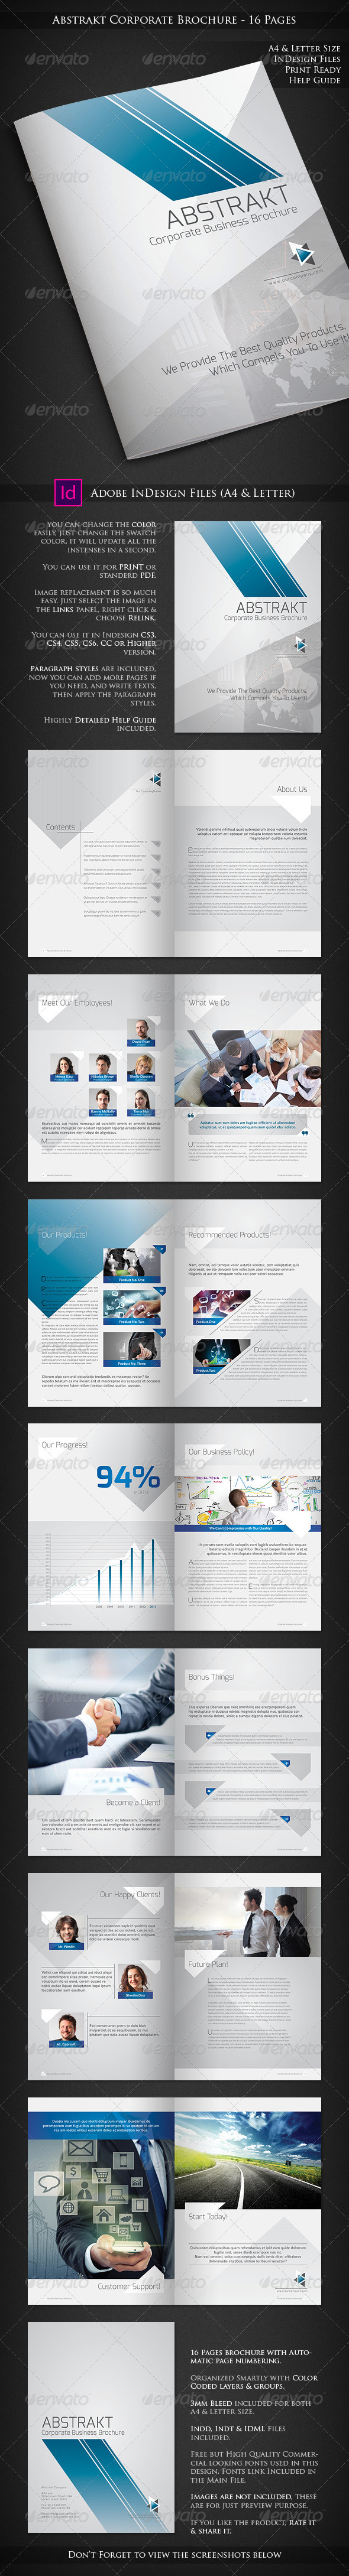 GraphicRiver Abstrakt Corporate Brochure Design 16 Pages 6746830